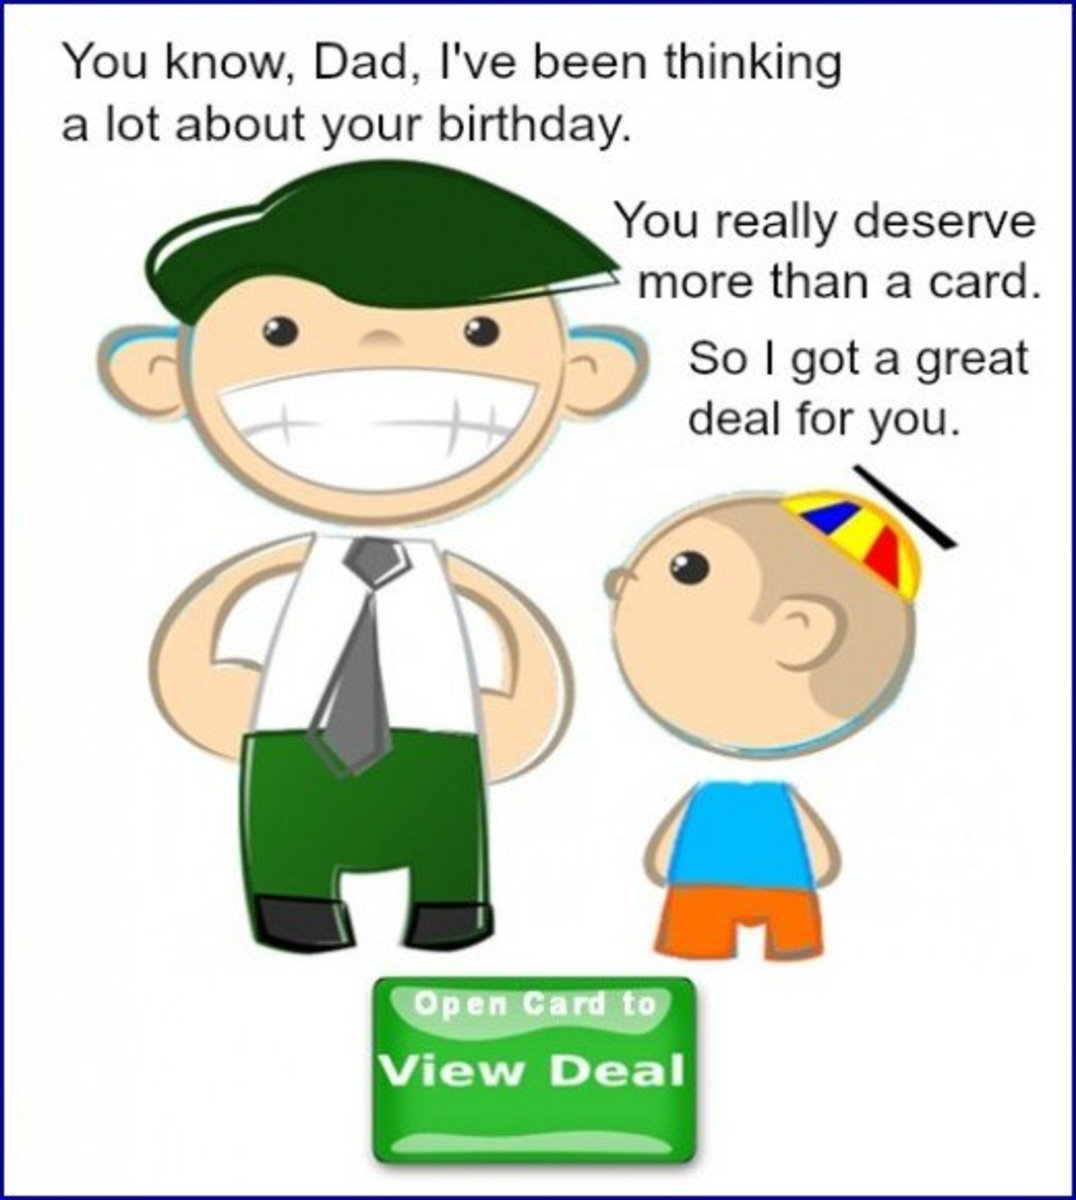 Funny Dad Birthday Cards Funny dad birthday card from